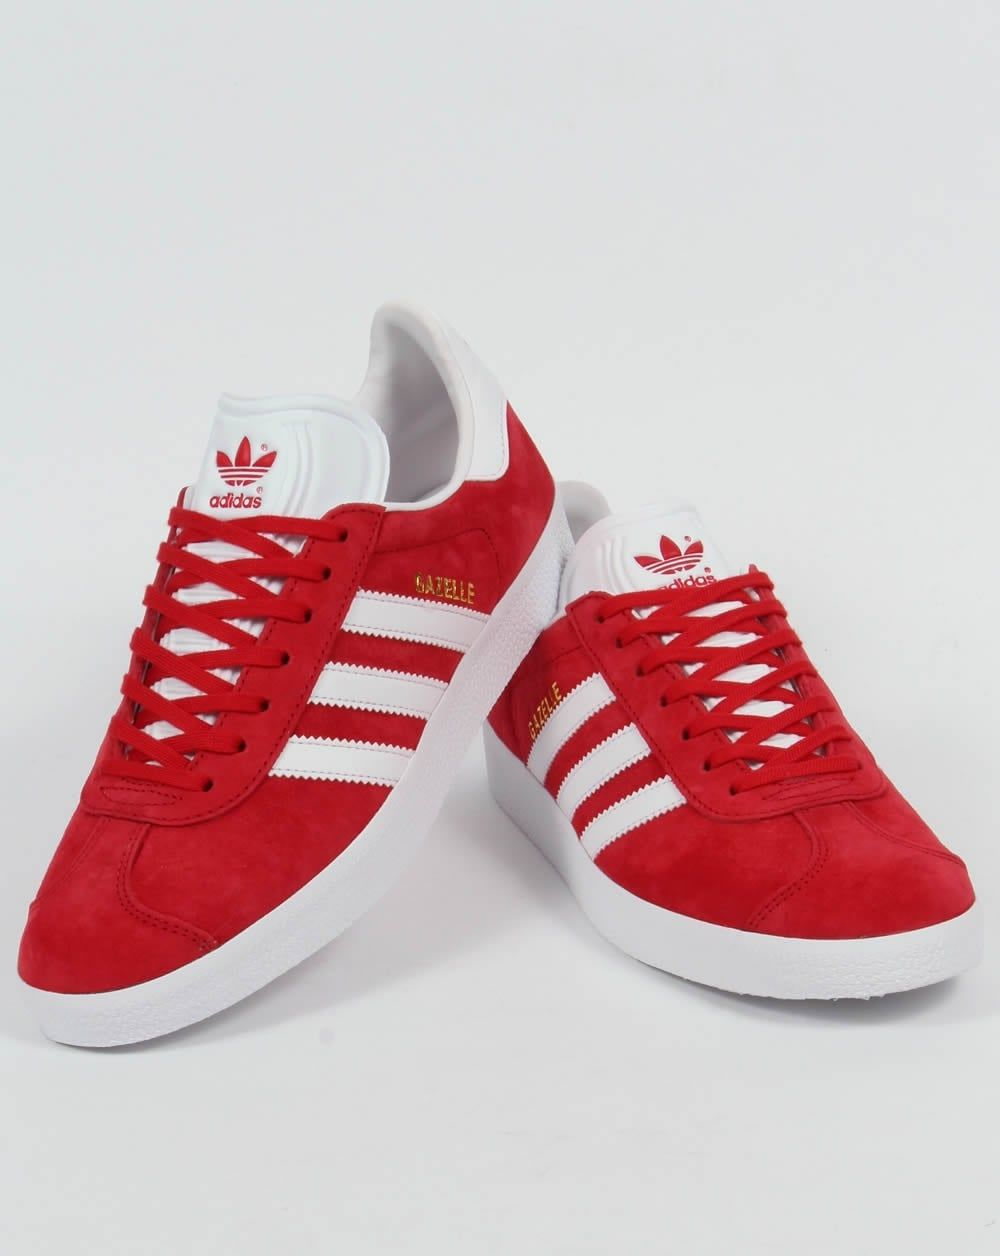 adidas gazelle trainers power red white p6263 51906_image